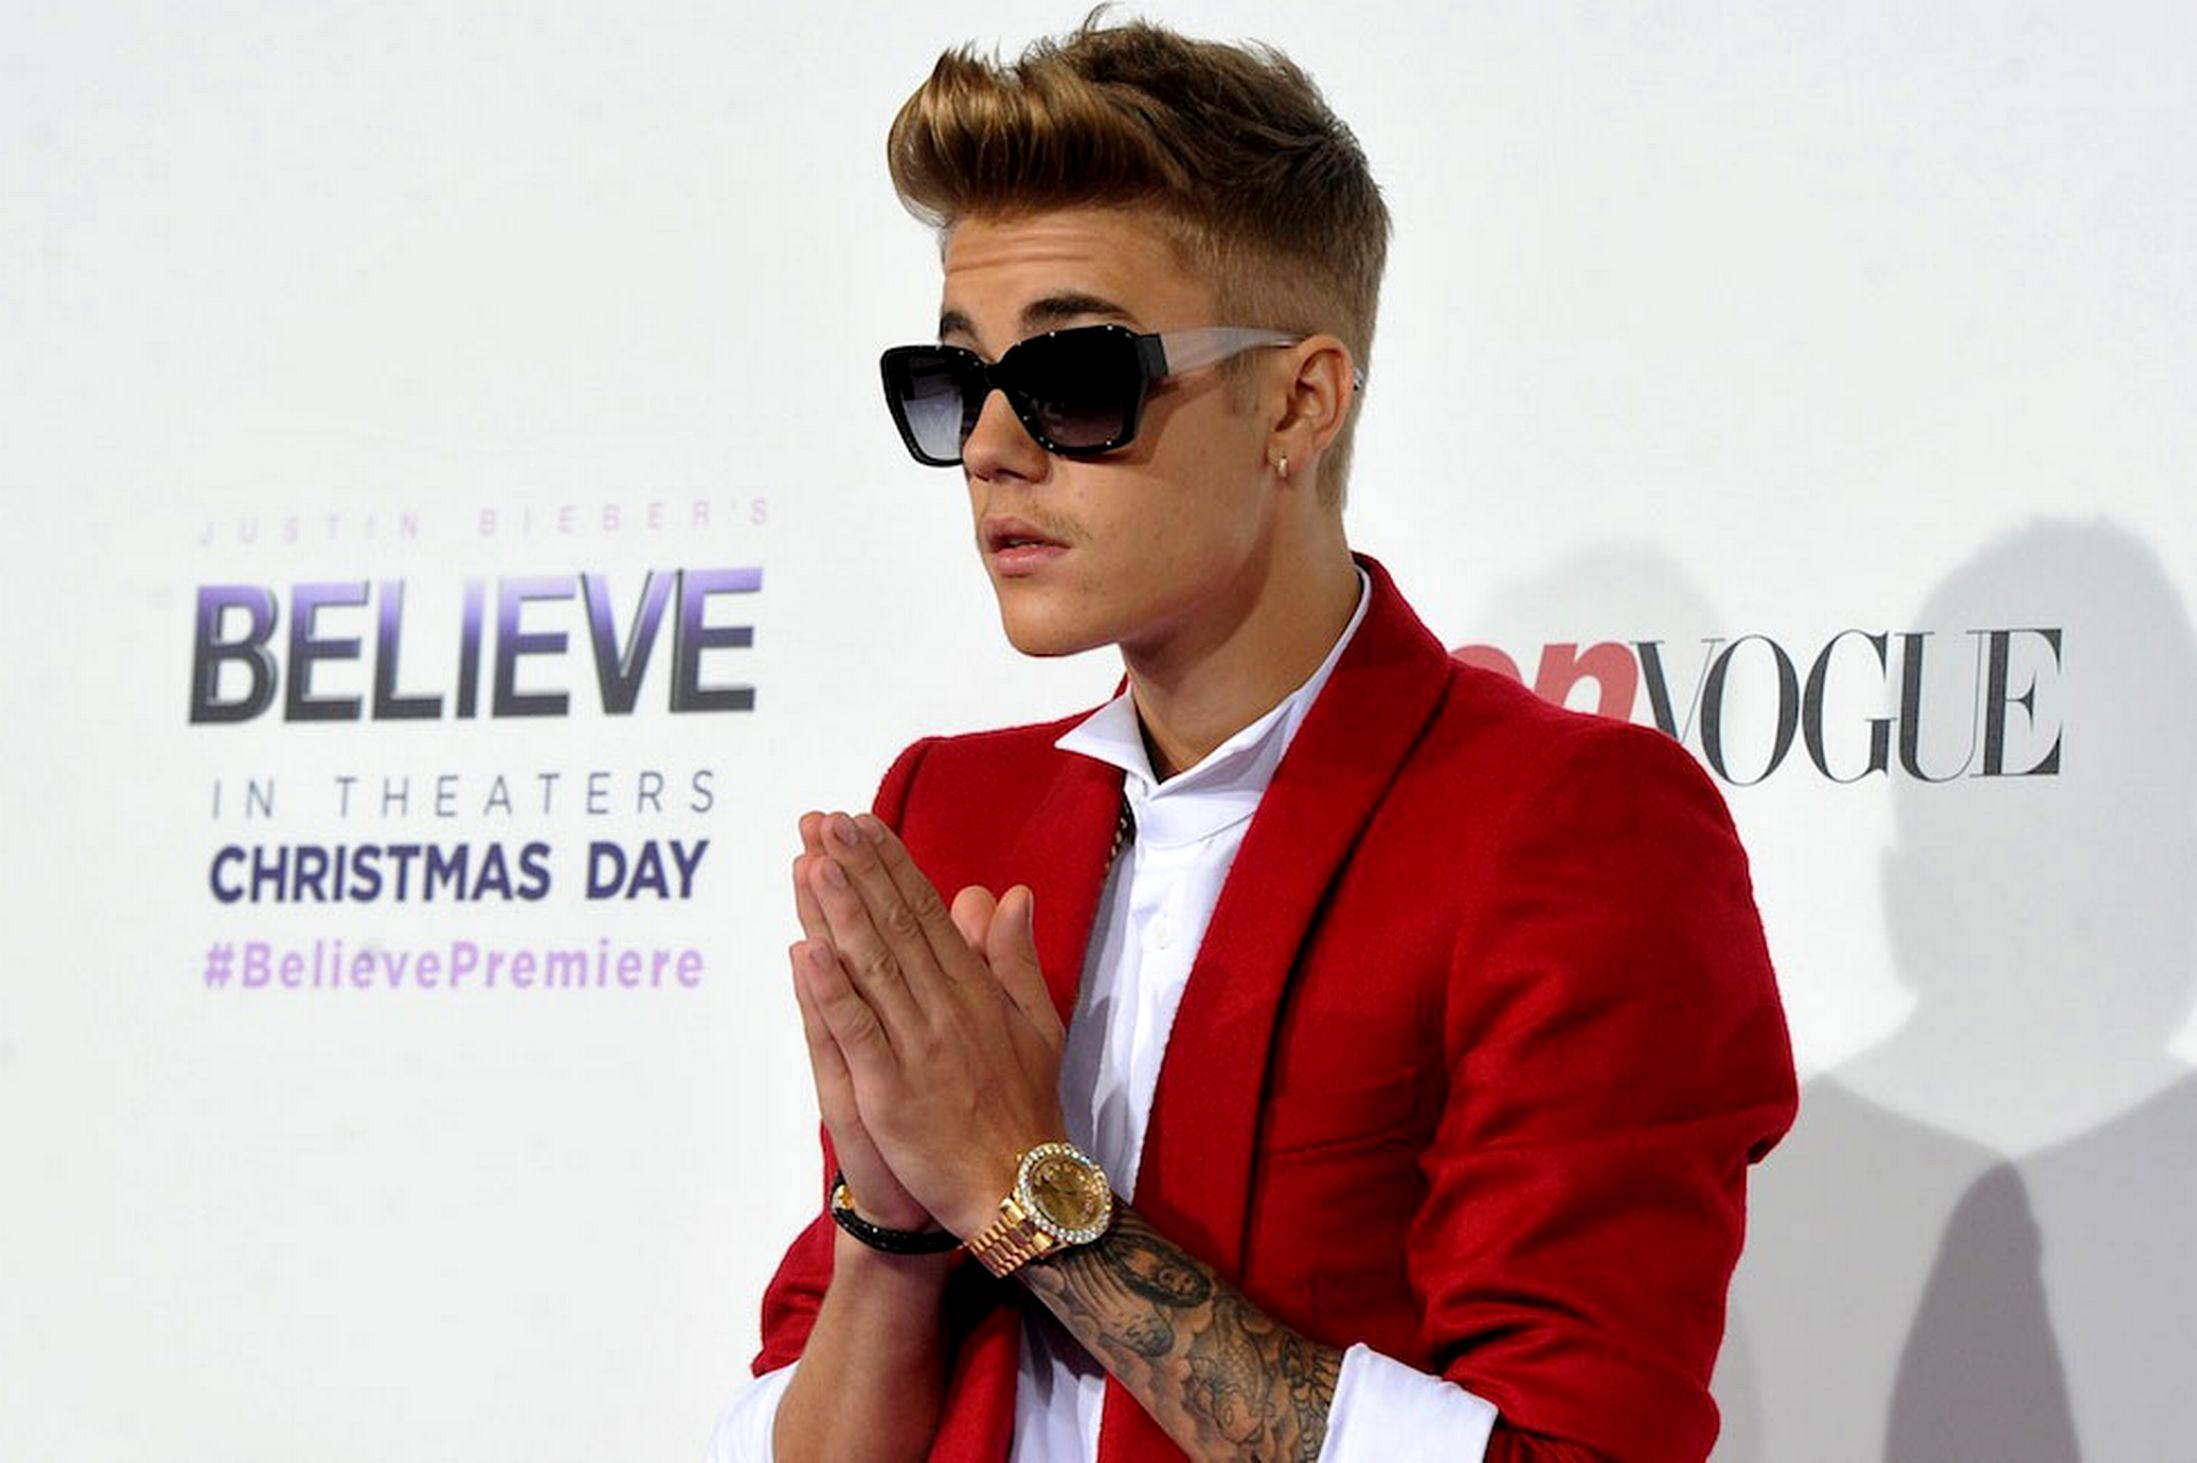 HD Justin bieber 2014 Funny Wallpapers